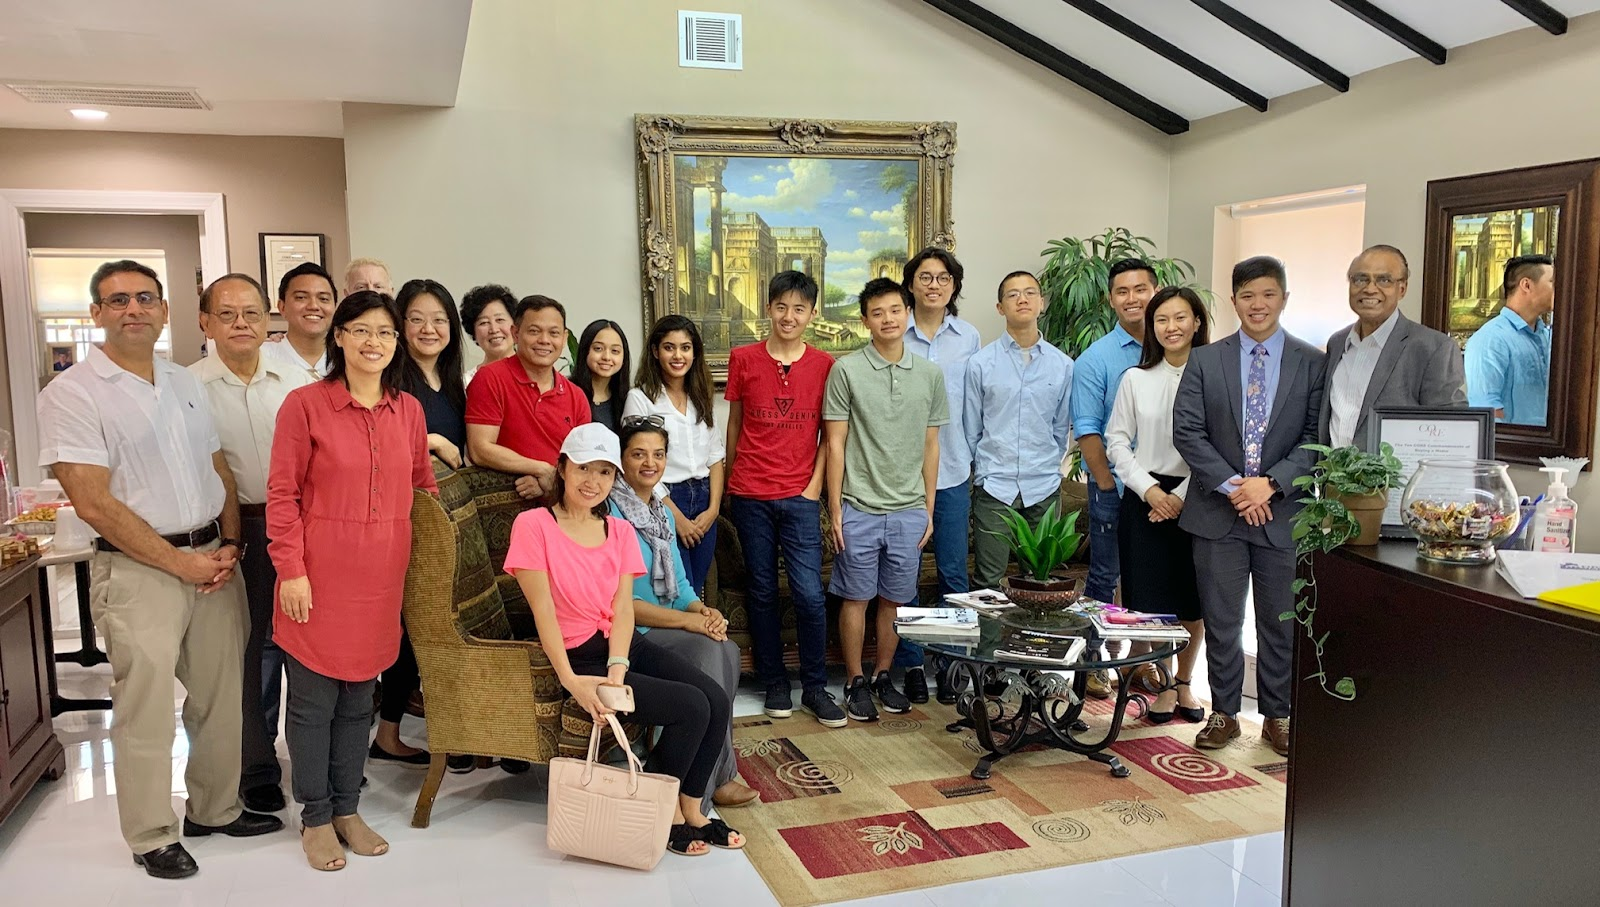 Houston Asian American Community Celebrating Completion of the 2019 Summer Student Internship in Civic Leadership